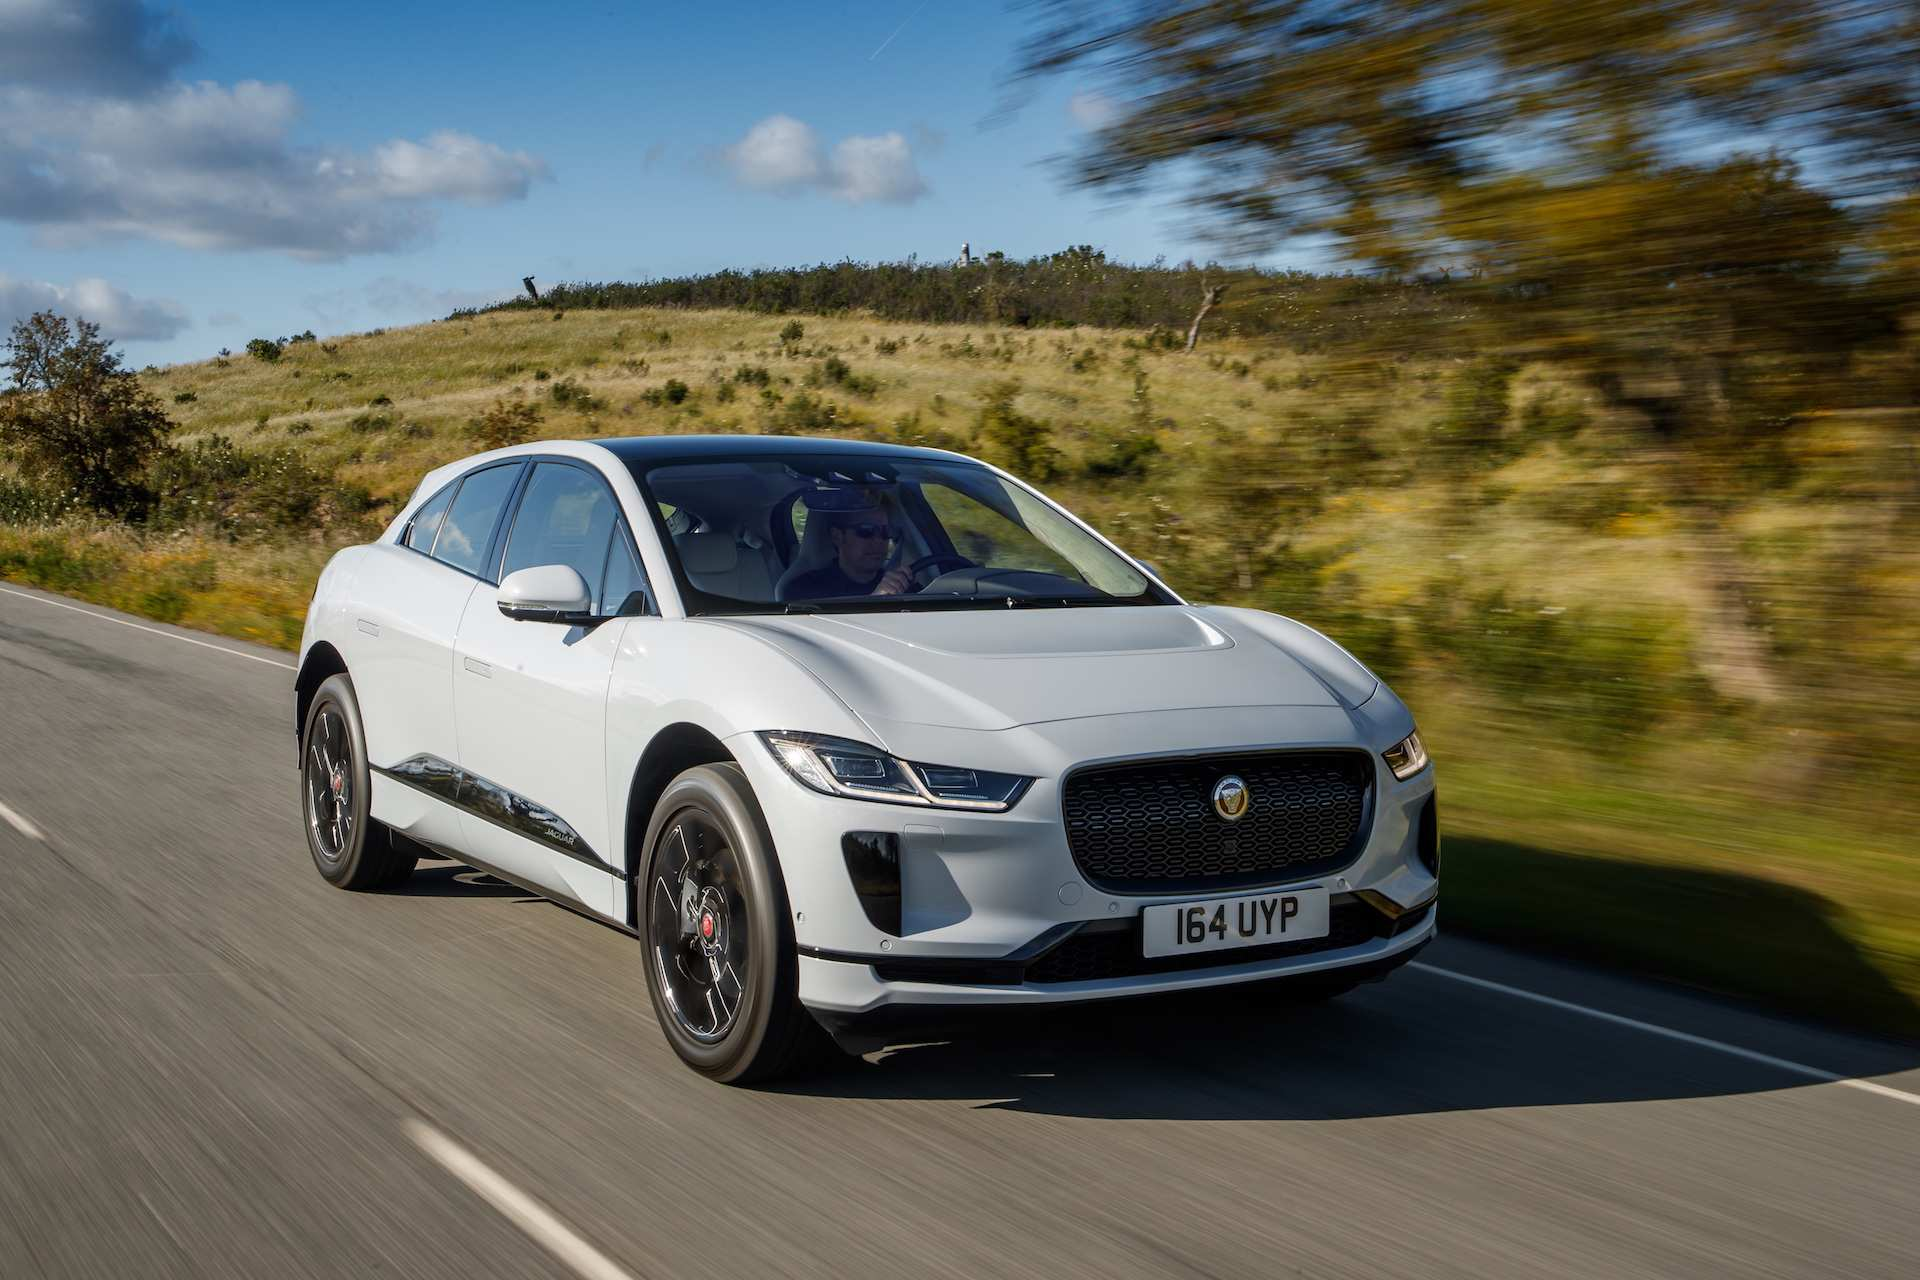 58 All New Suv Jaguar 2019 Release